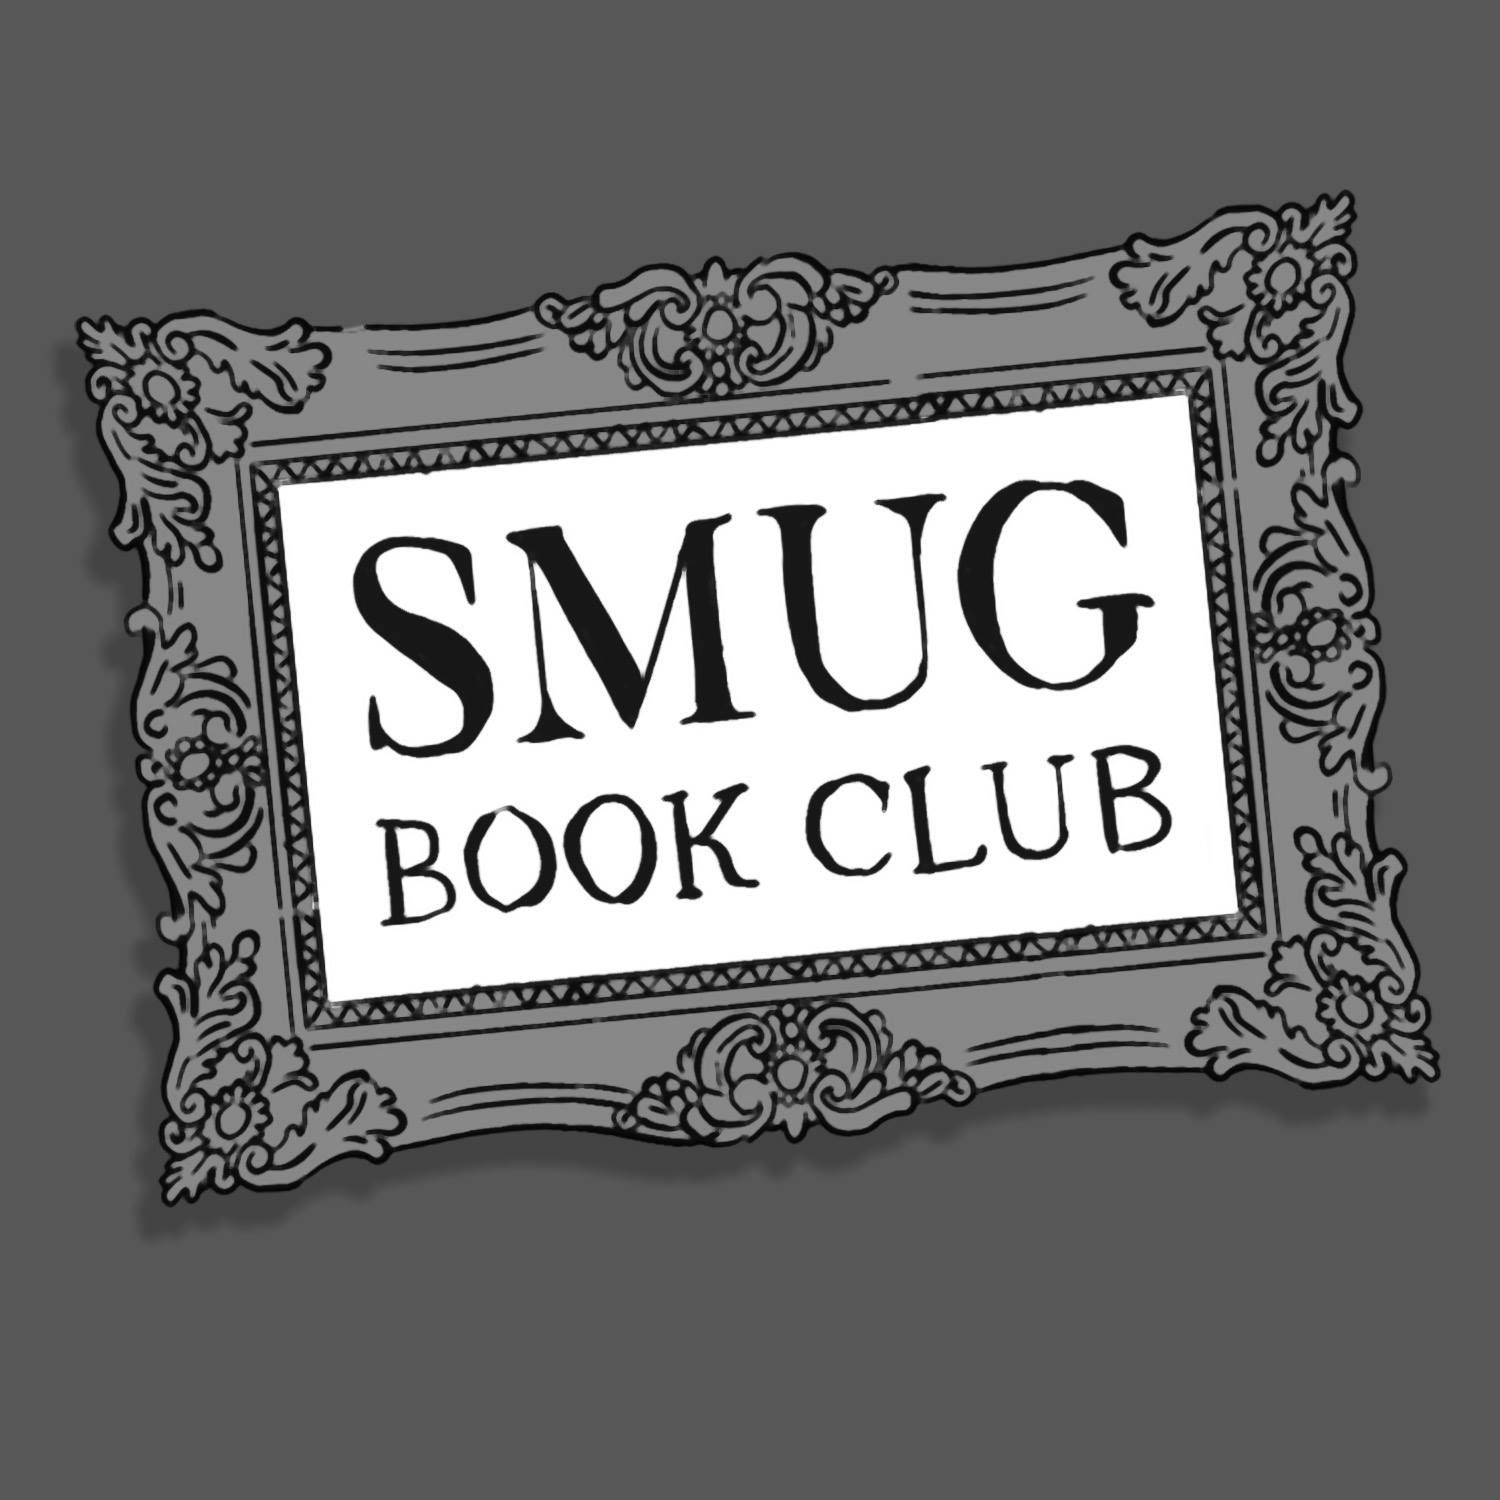 THE MIGHTY REBRAND: From 'Thug Book Club' to 'Smug Book Club' show art